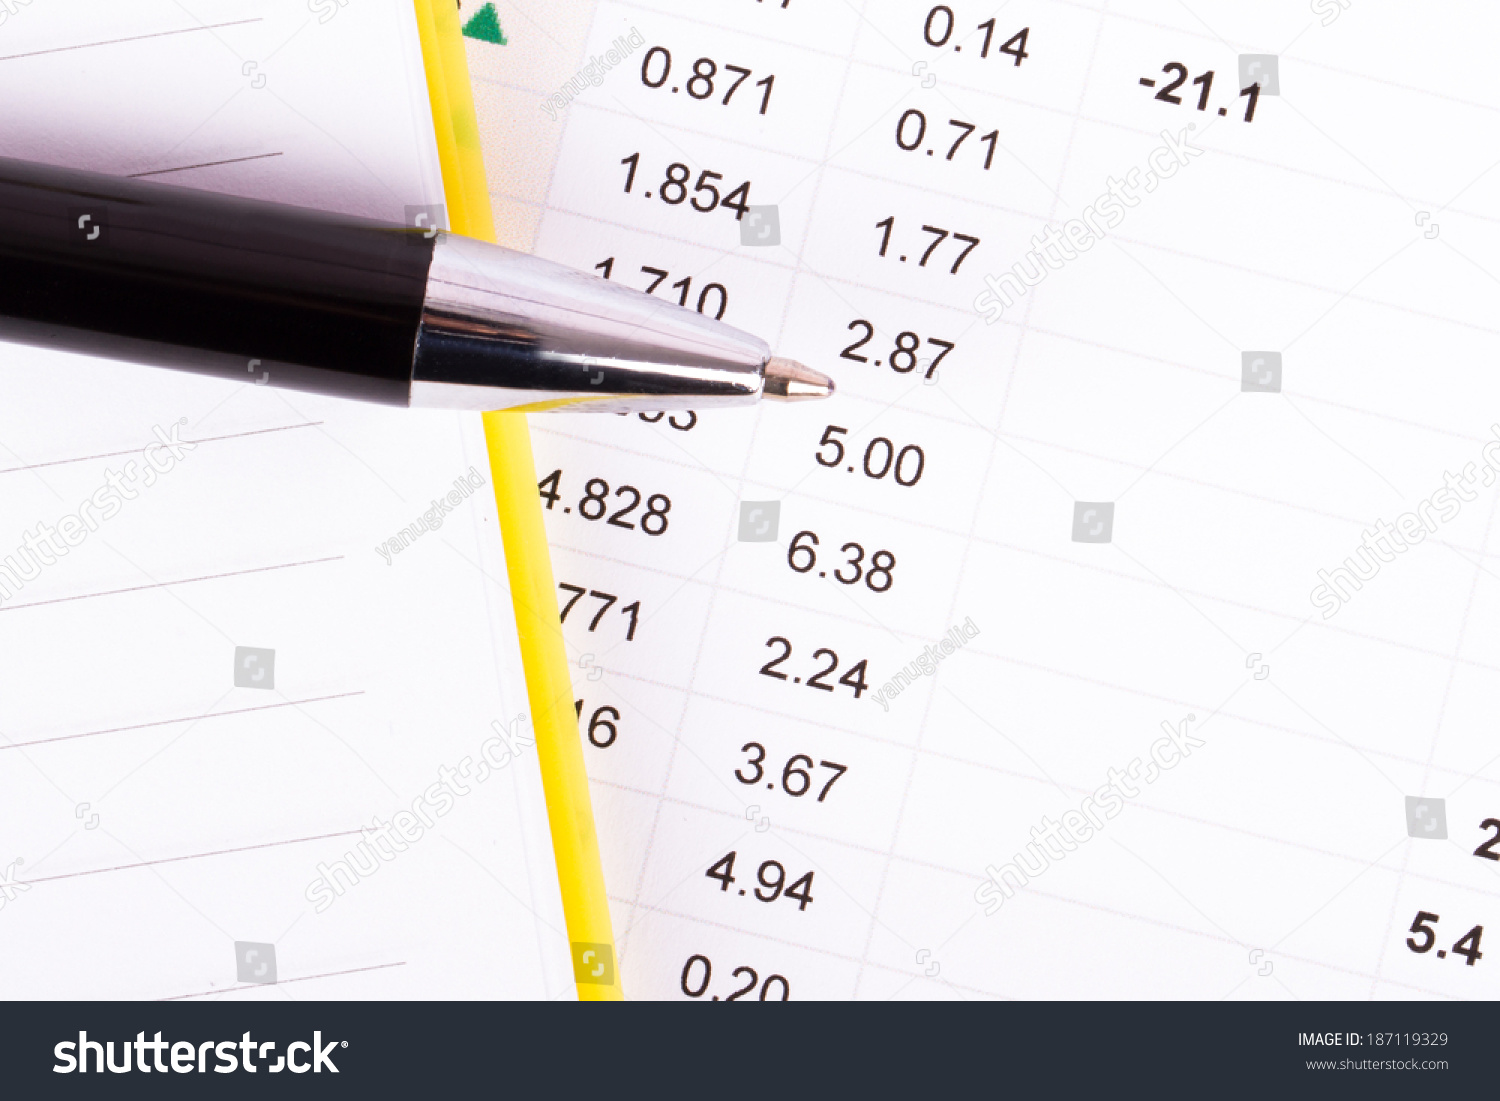 Financial Data Analysis With Notebook And Pen, Top View.